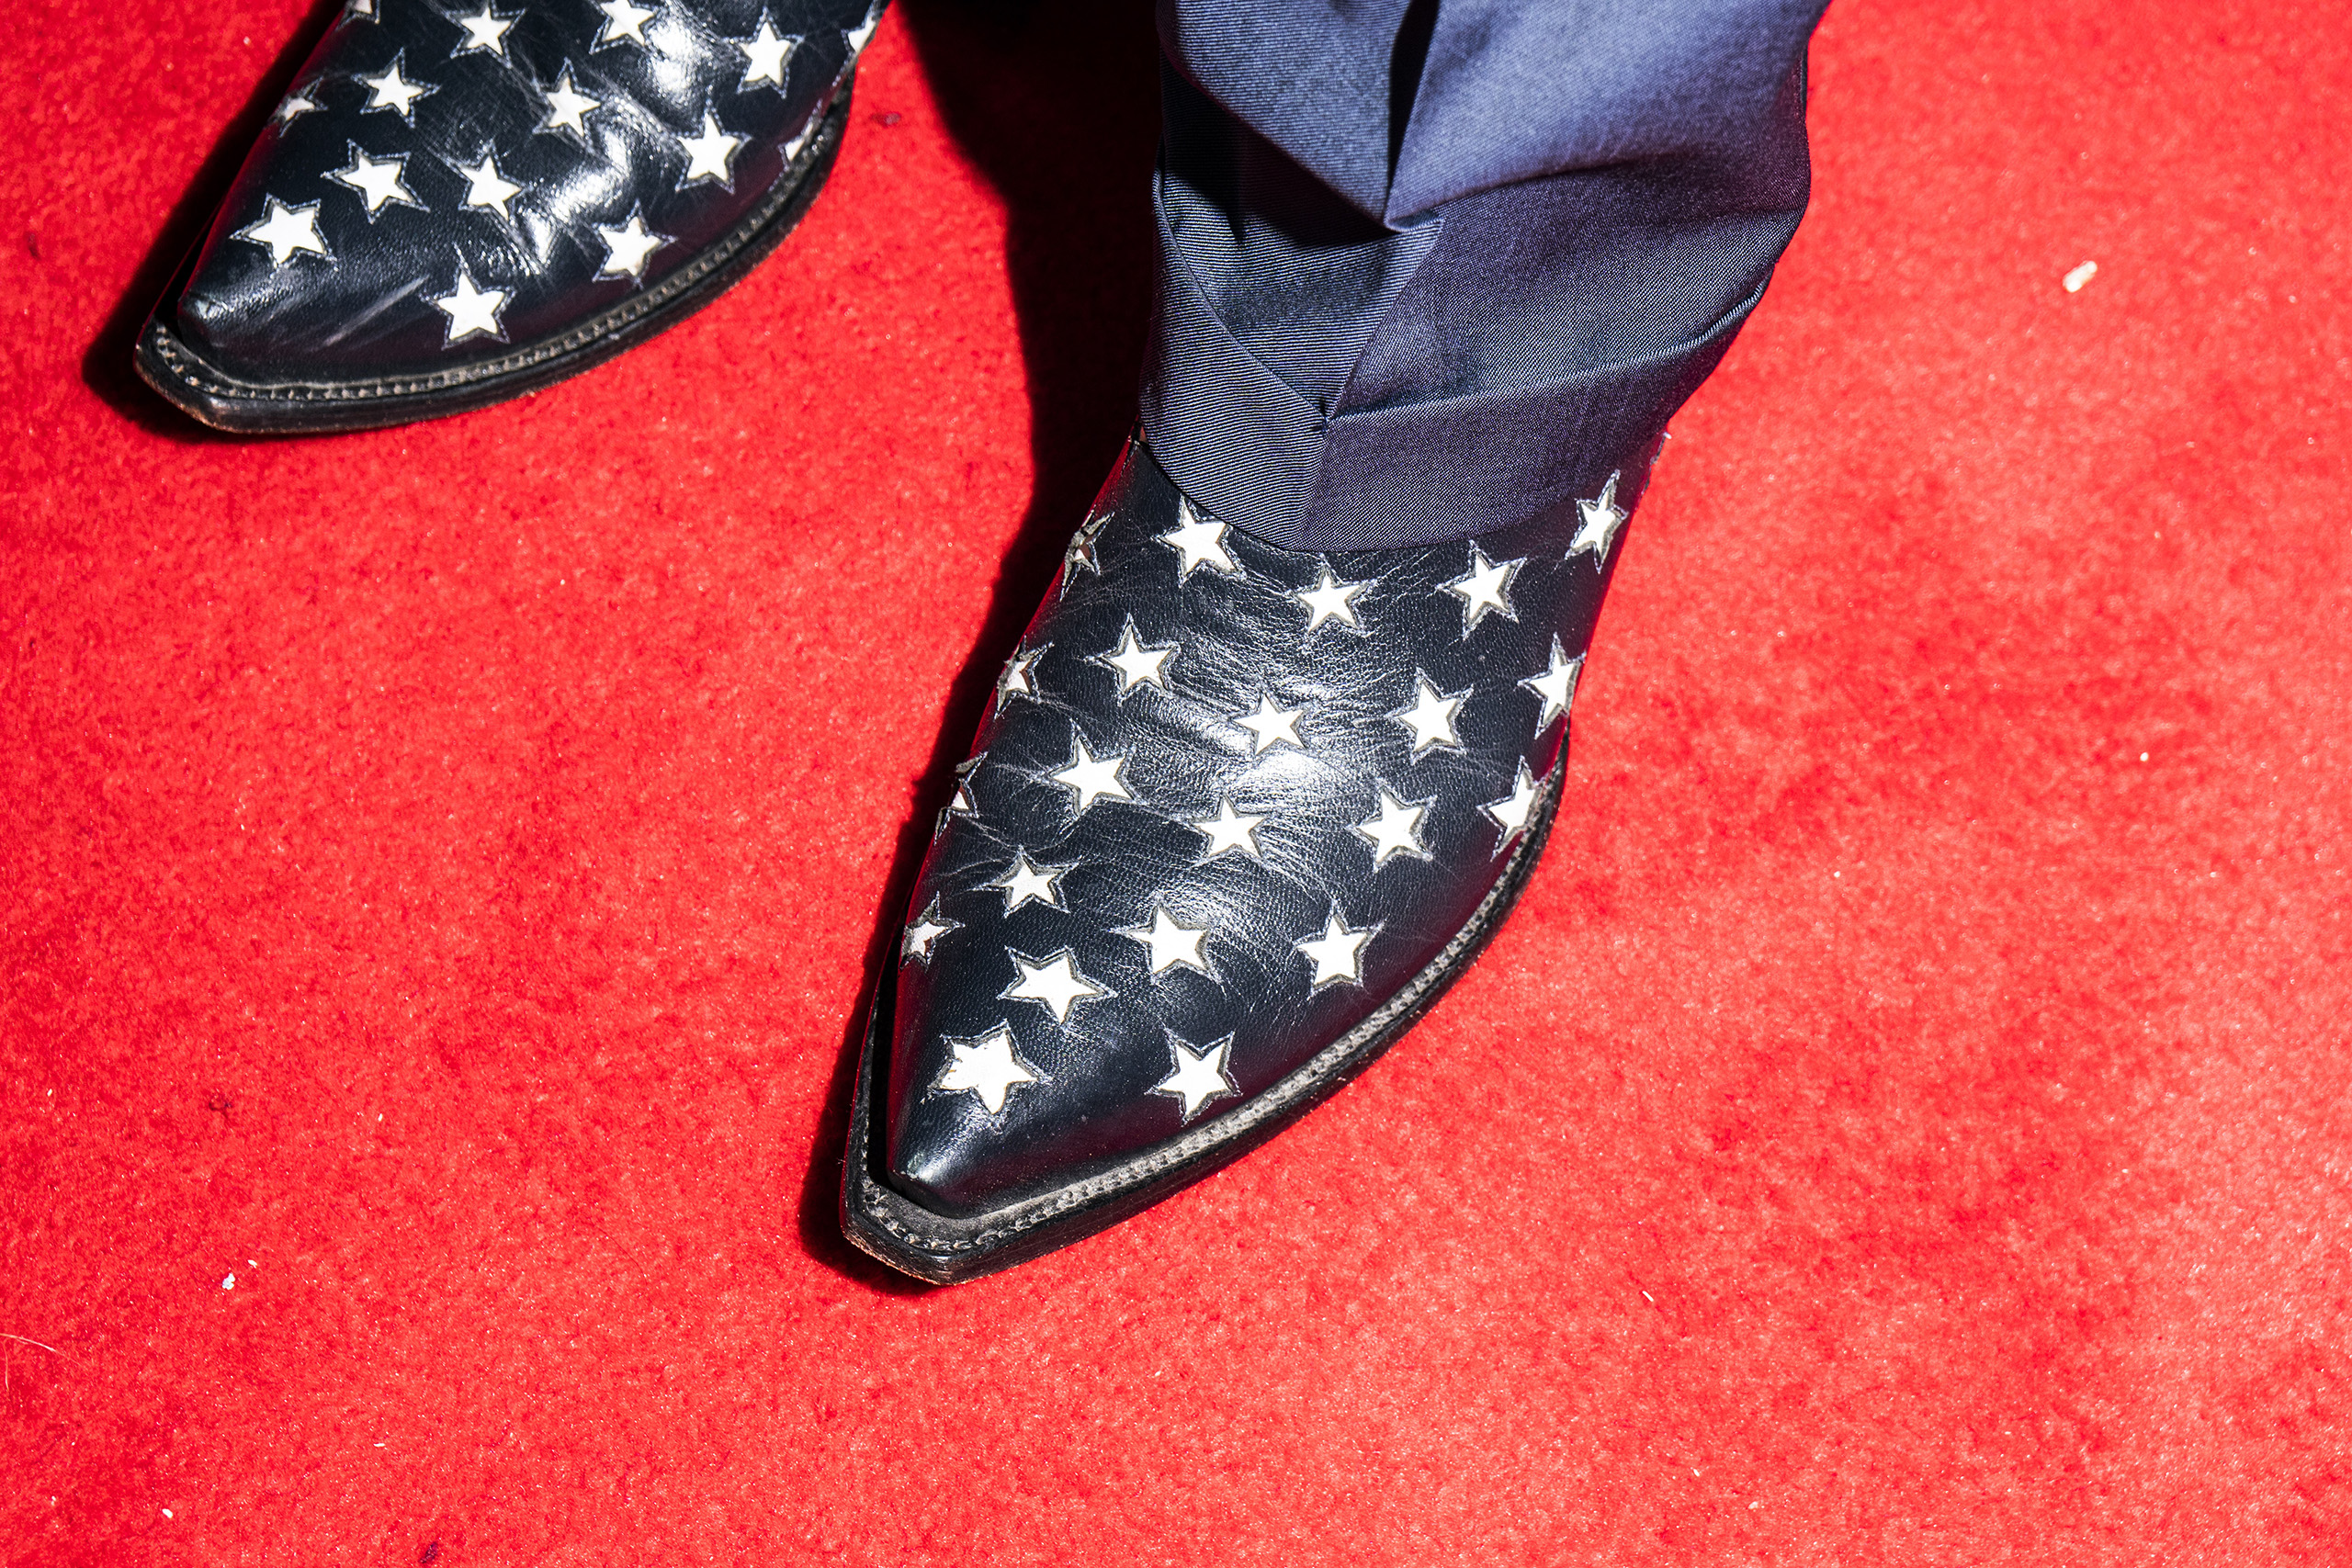 Star spangled shoes at the Republican National Convention in Cleveland, Ohio, U.S., on Monday, July 18, 2016.